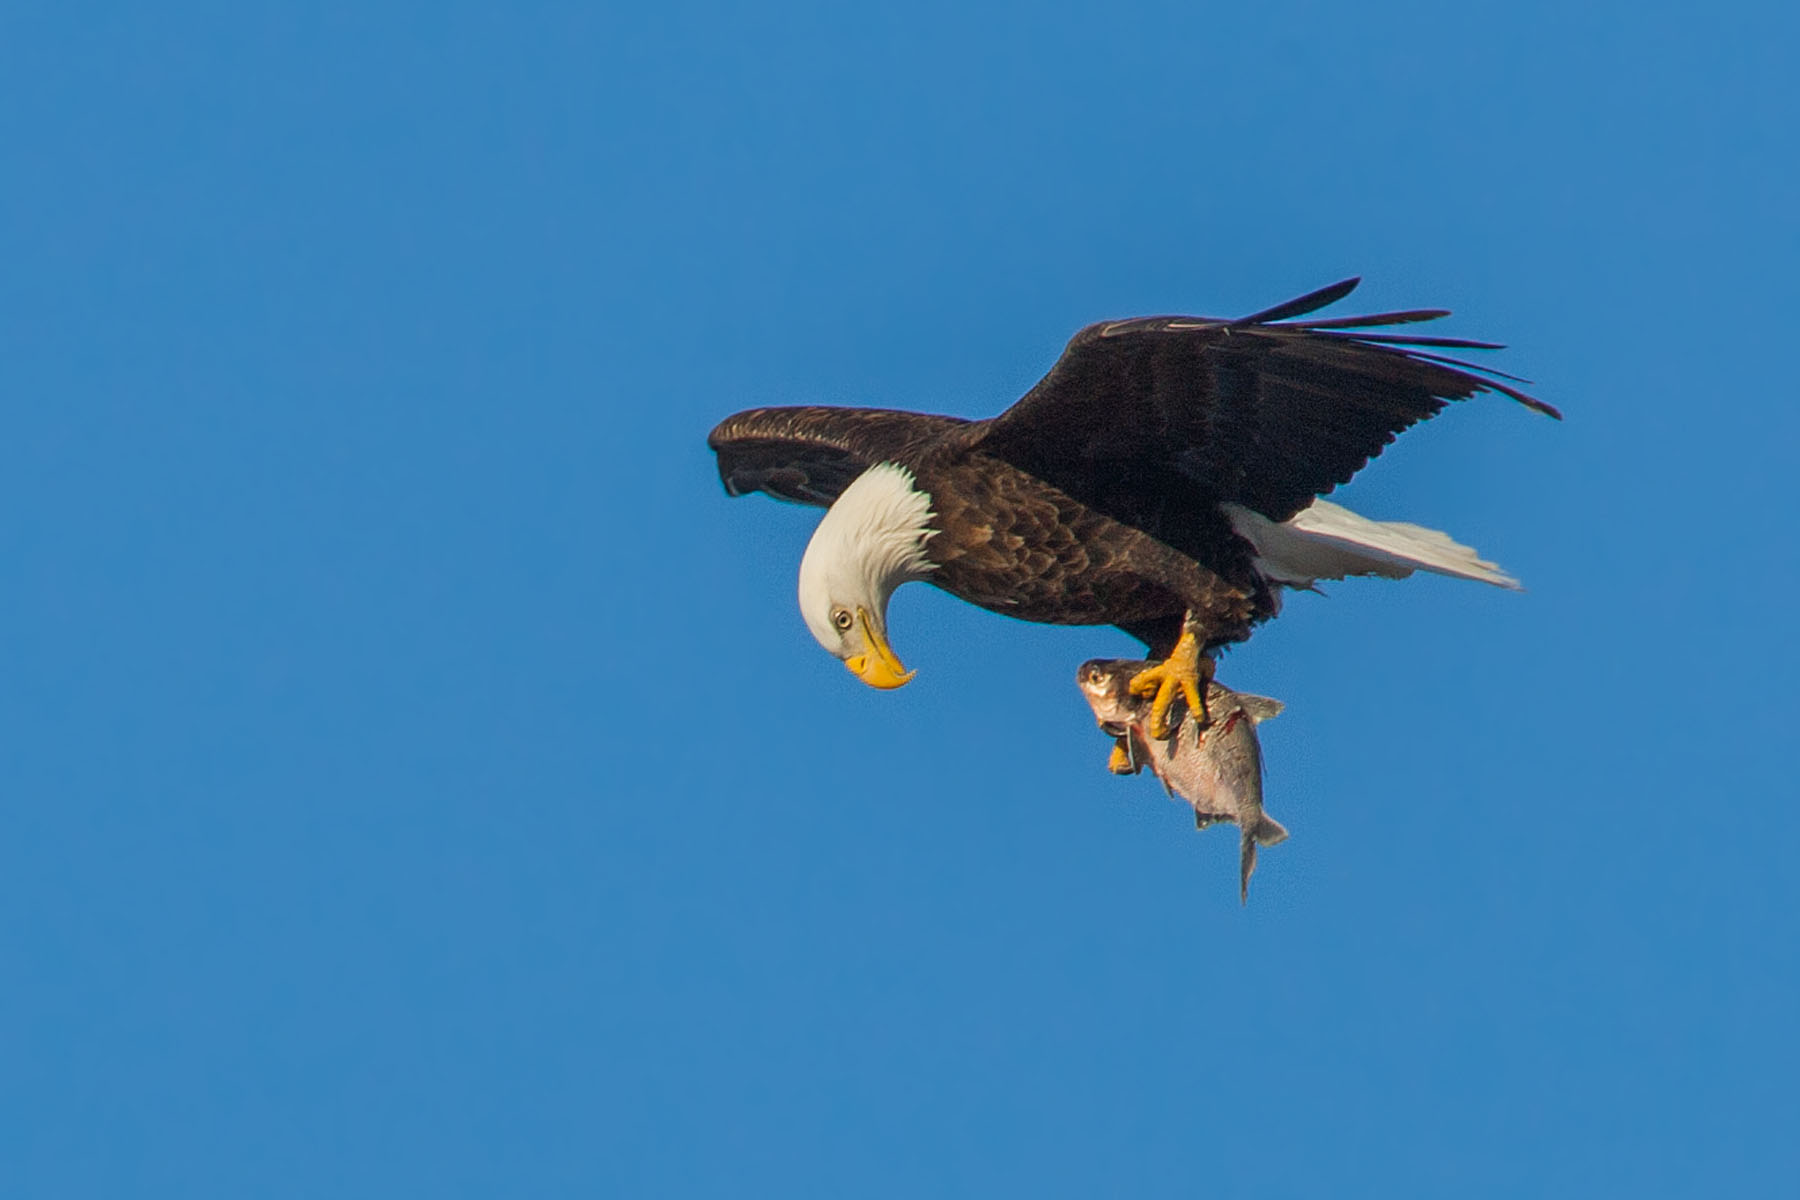 Bald eagle checks out its catch, Mississippi River, February 2007.  Click for next photo.